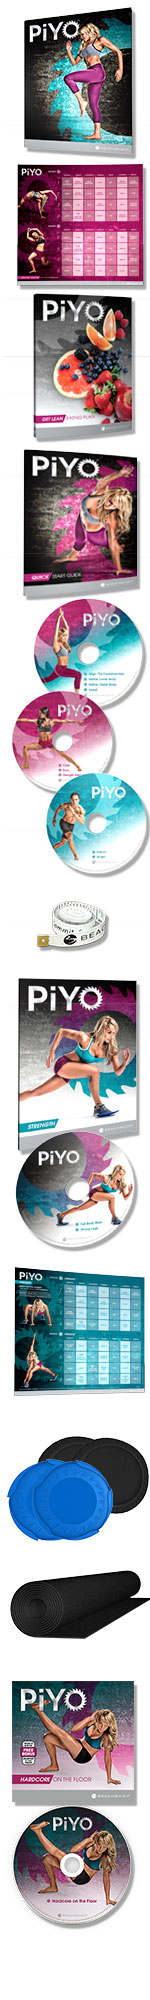 PiYo Deluxe DVD Package